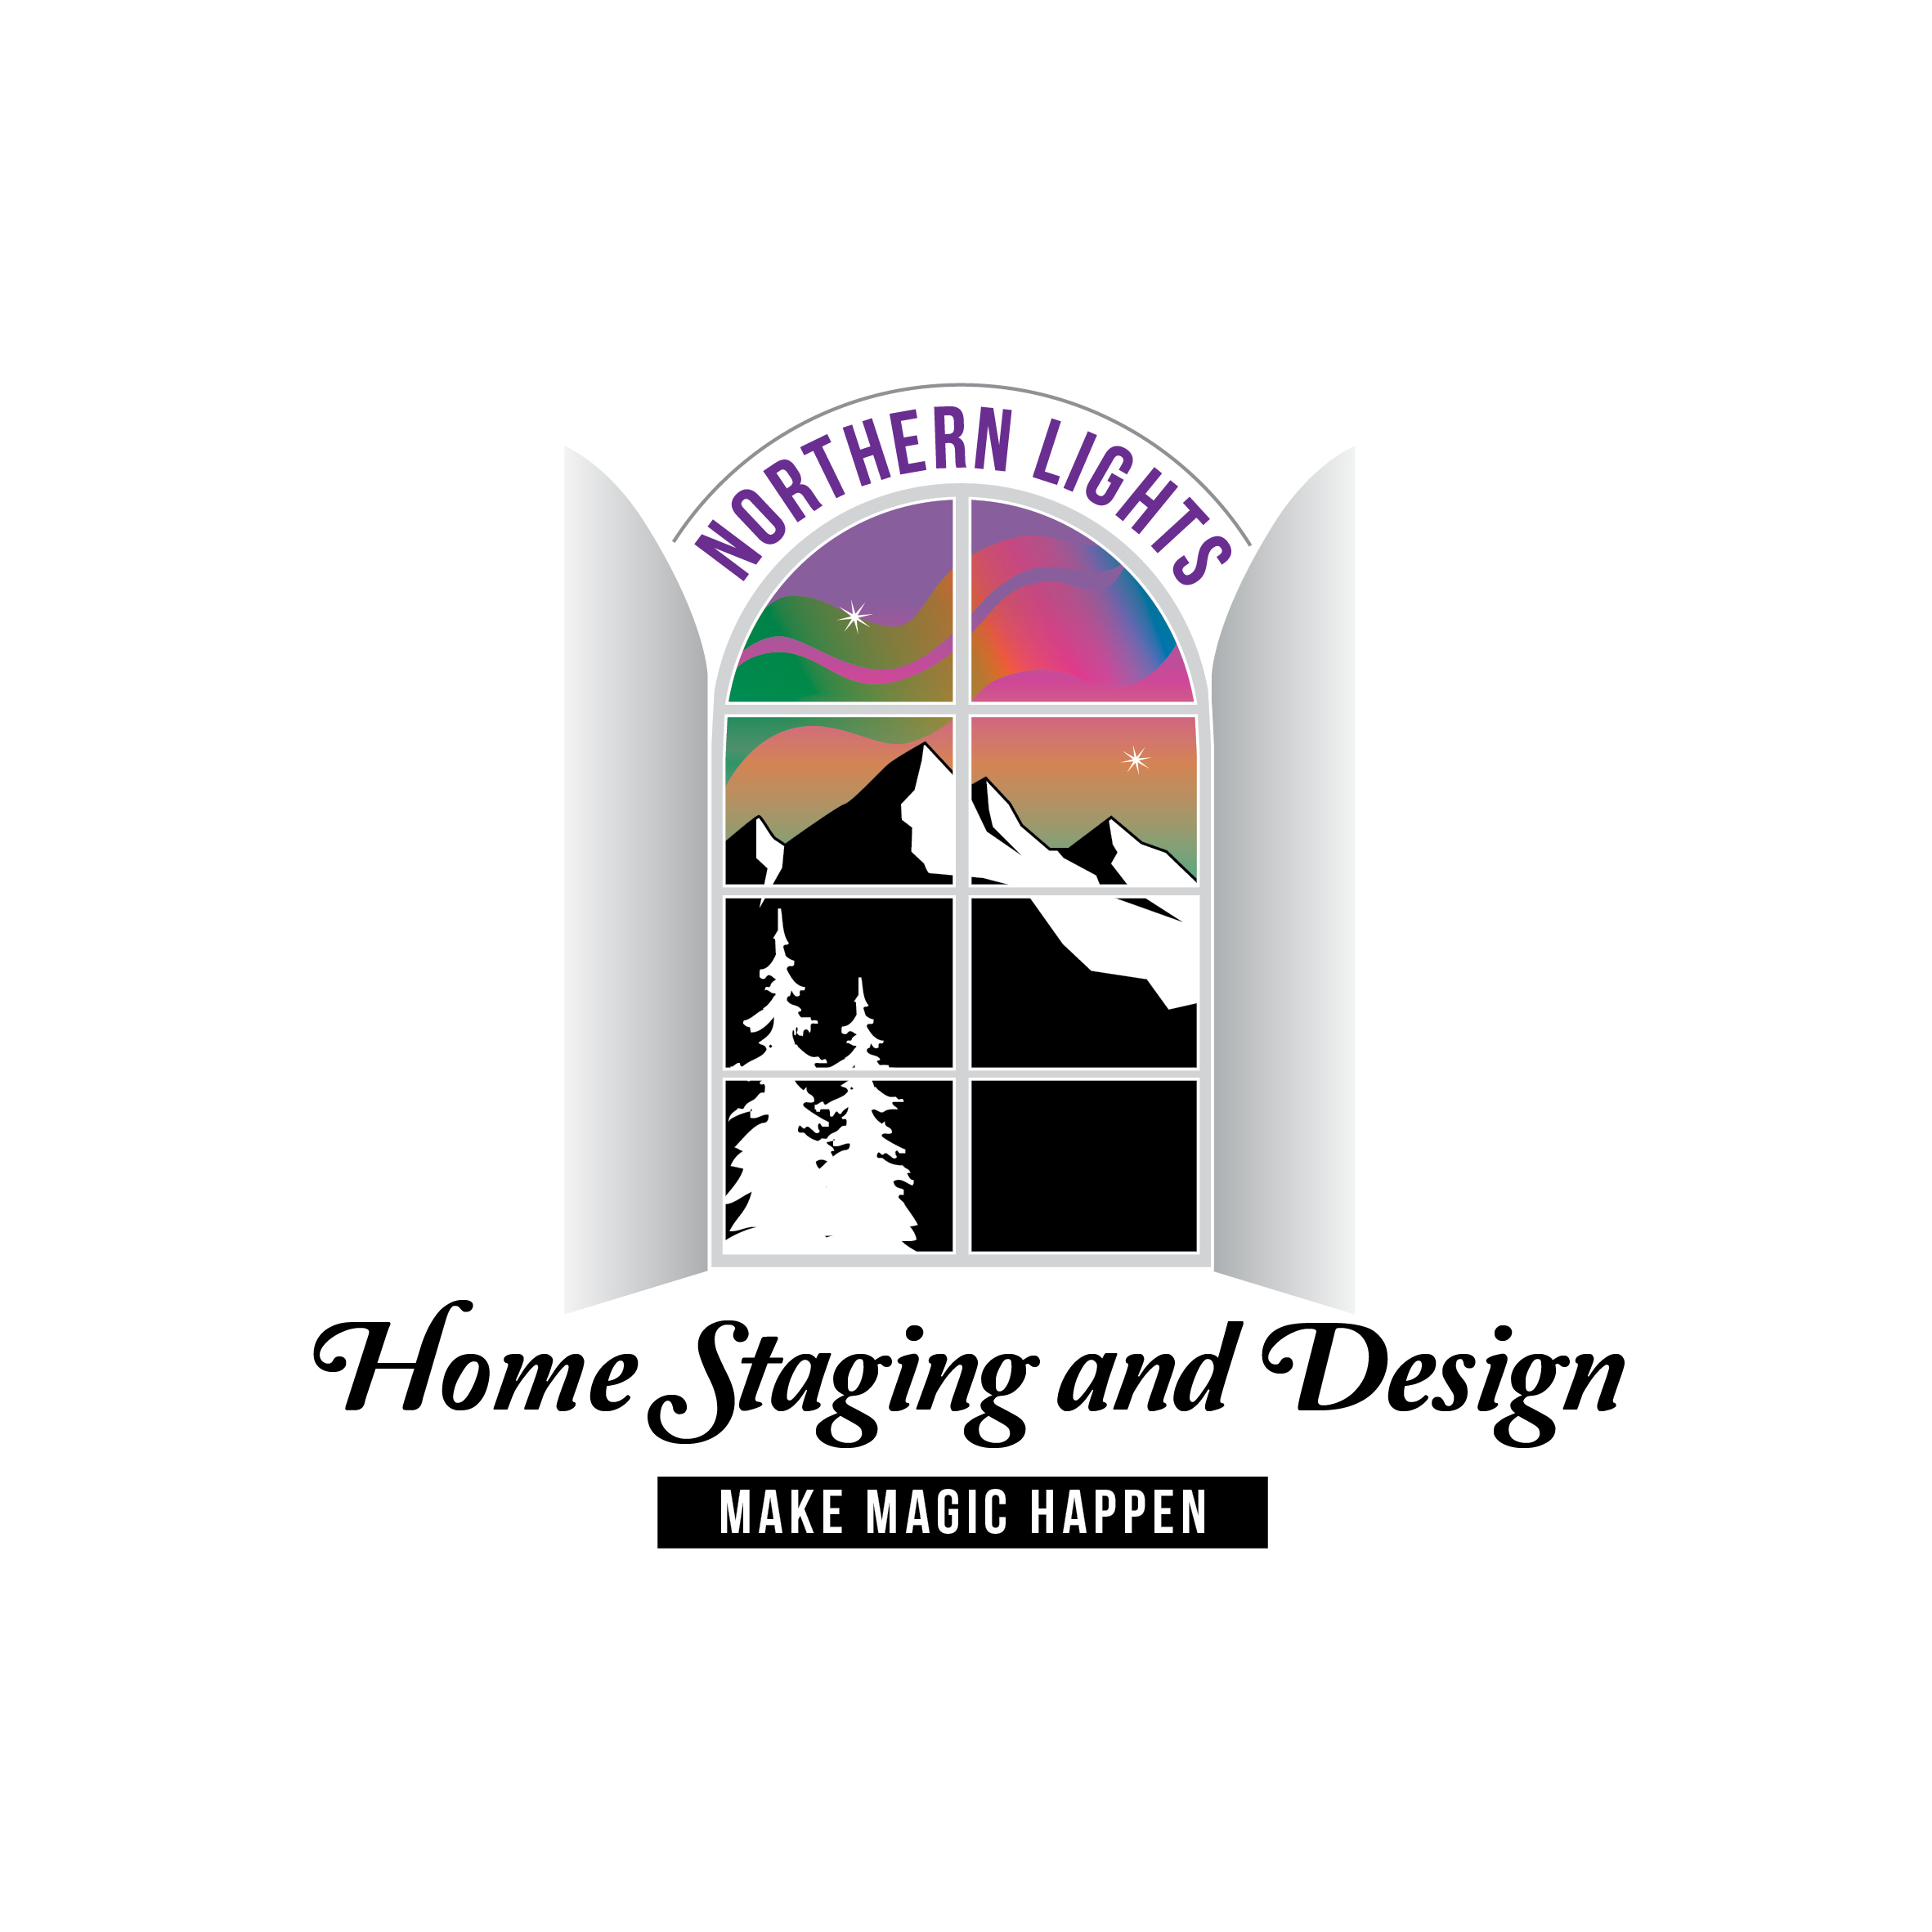 Northern Lights Home Staging and Design Photo